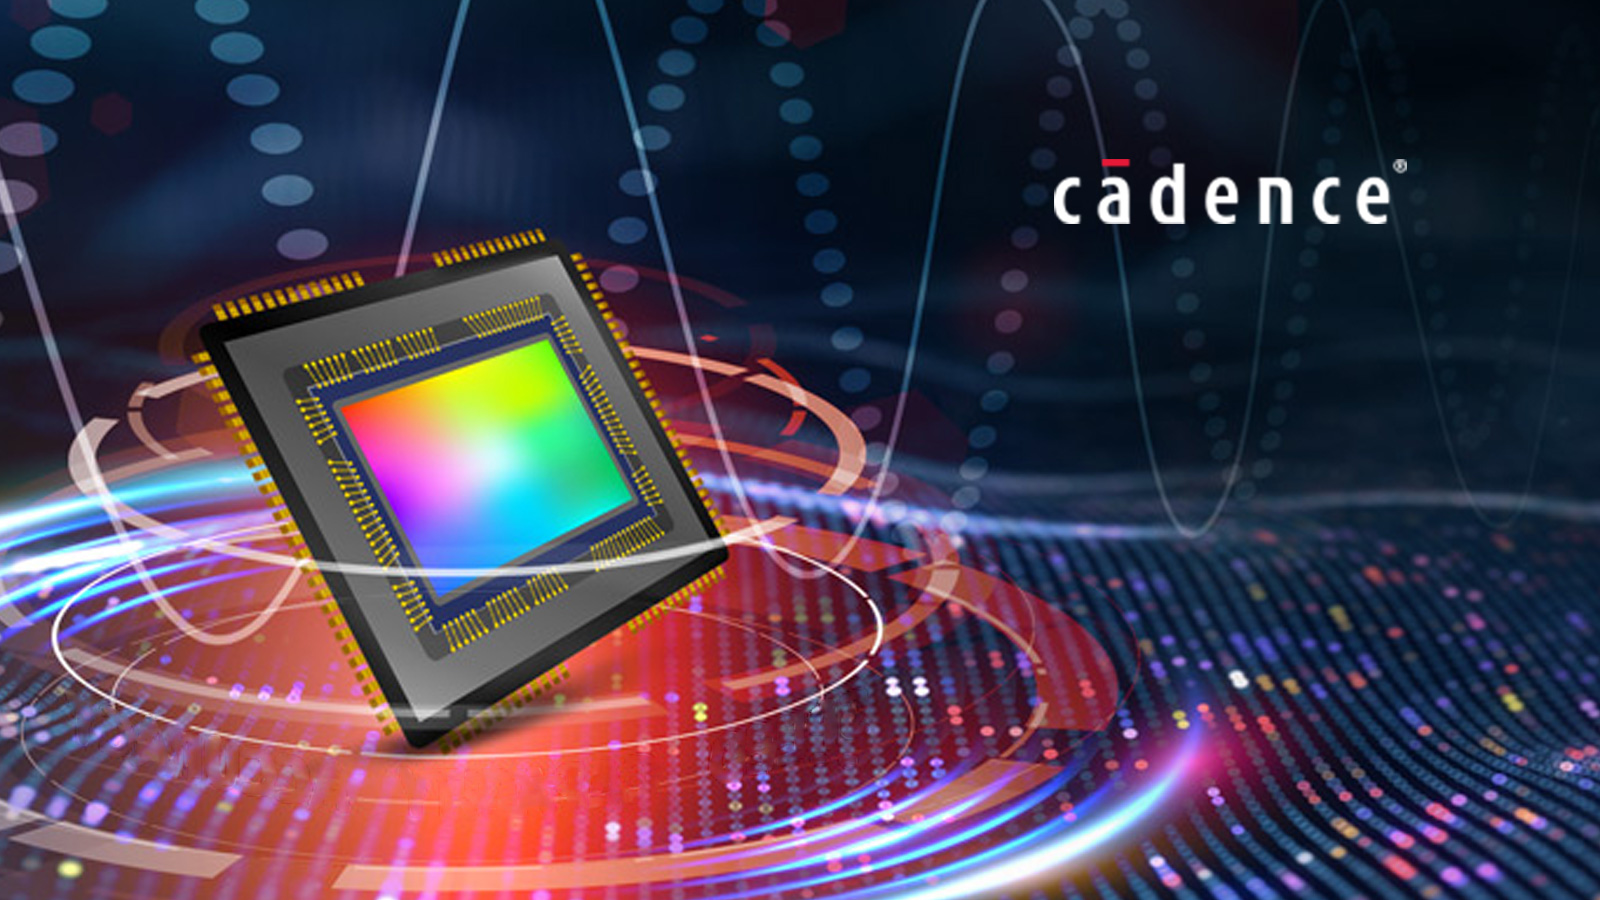 Toshiba Selects Cadence Tensilica Vision P6 DSP as Image